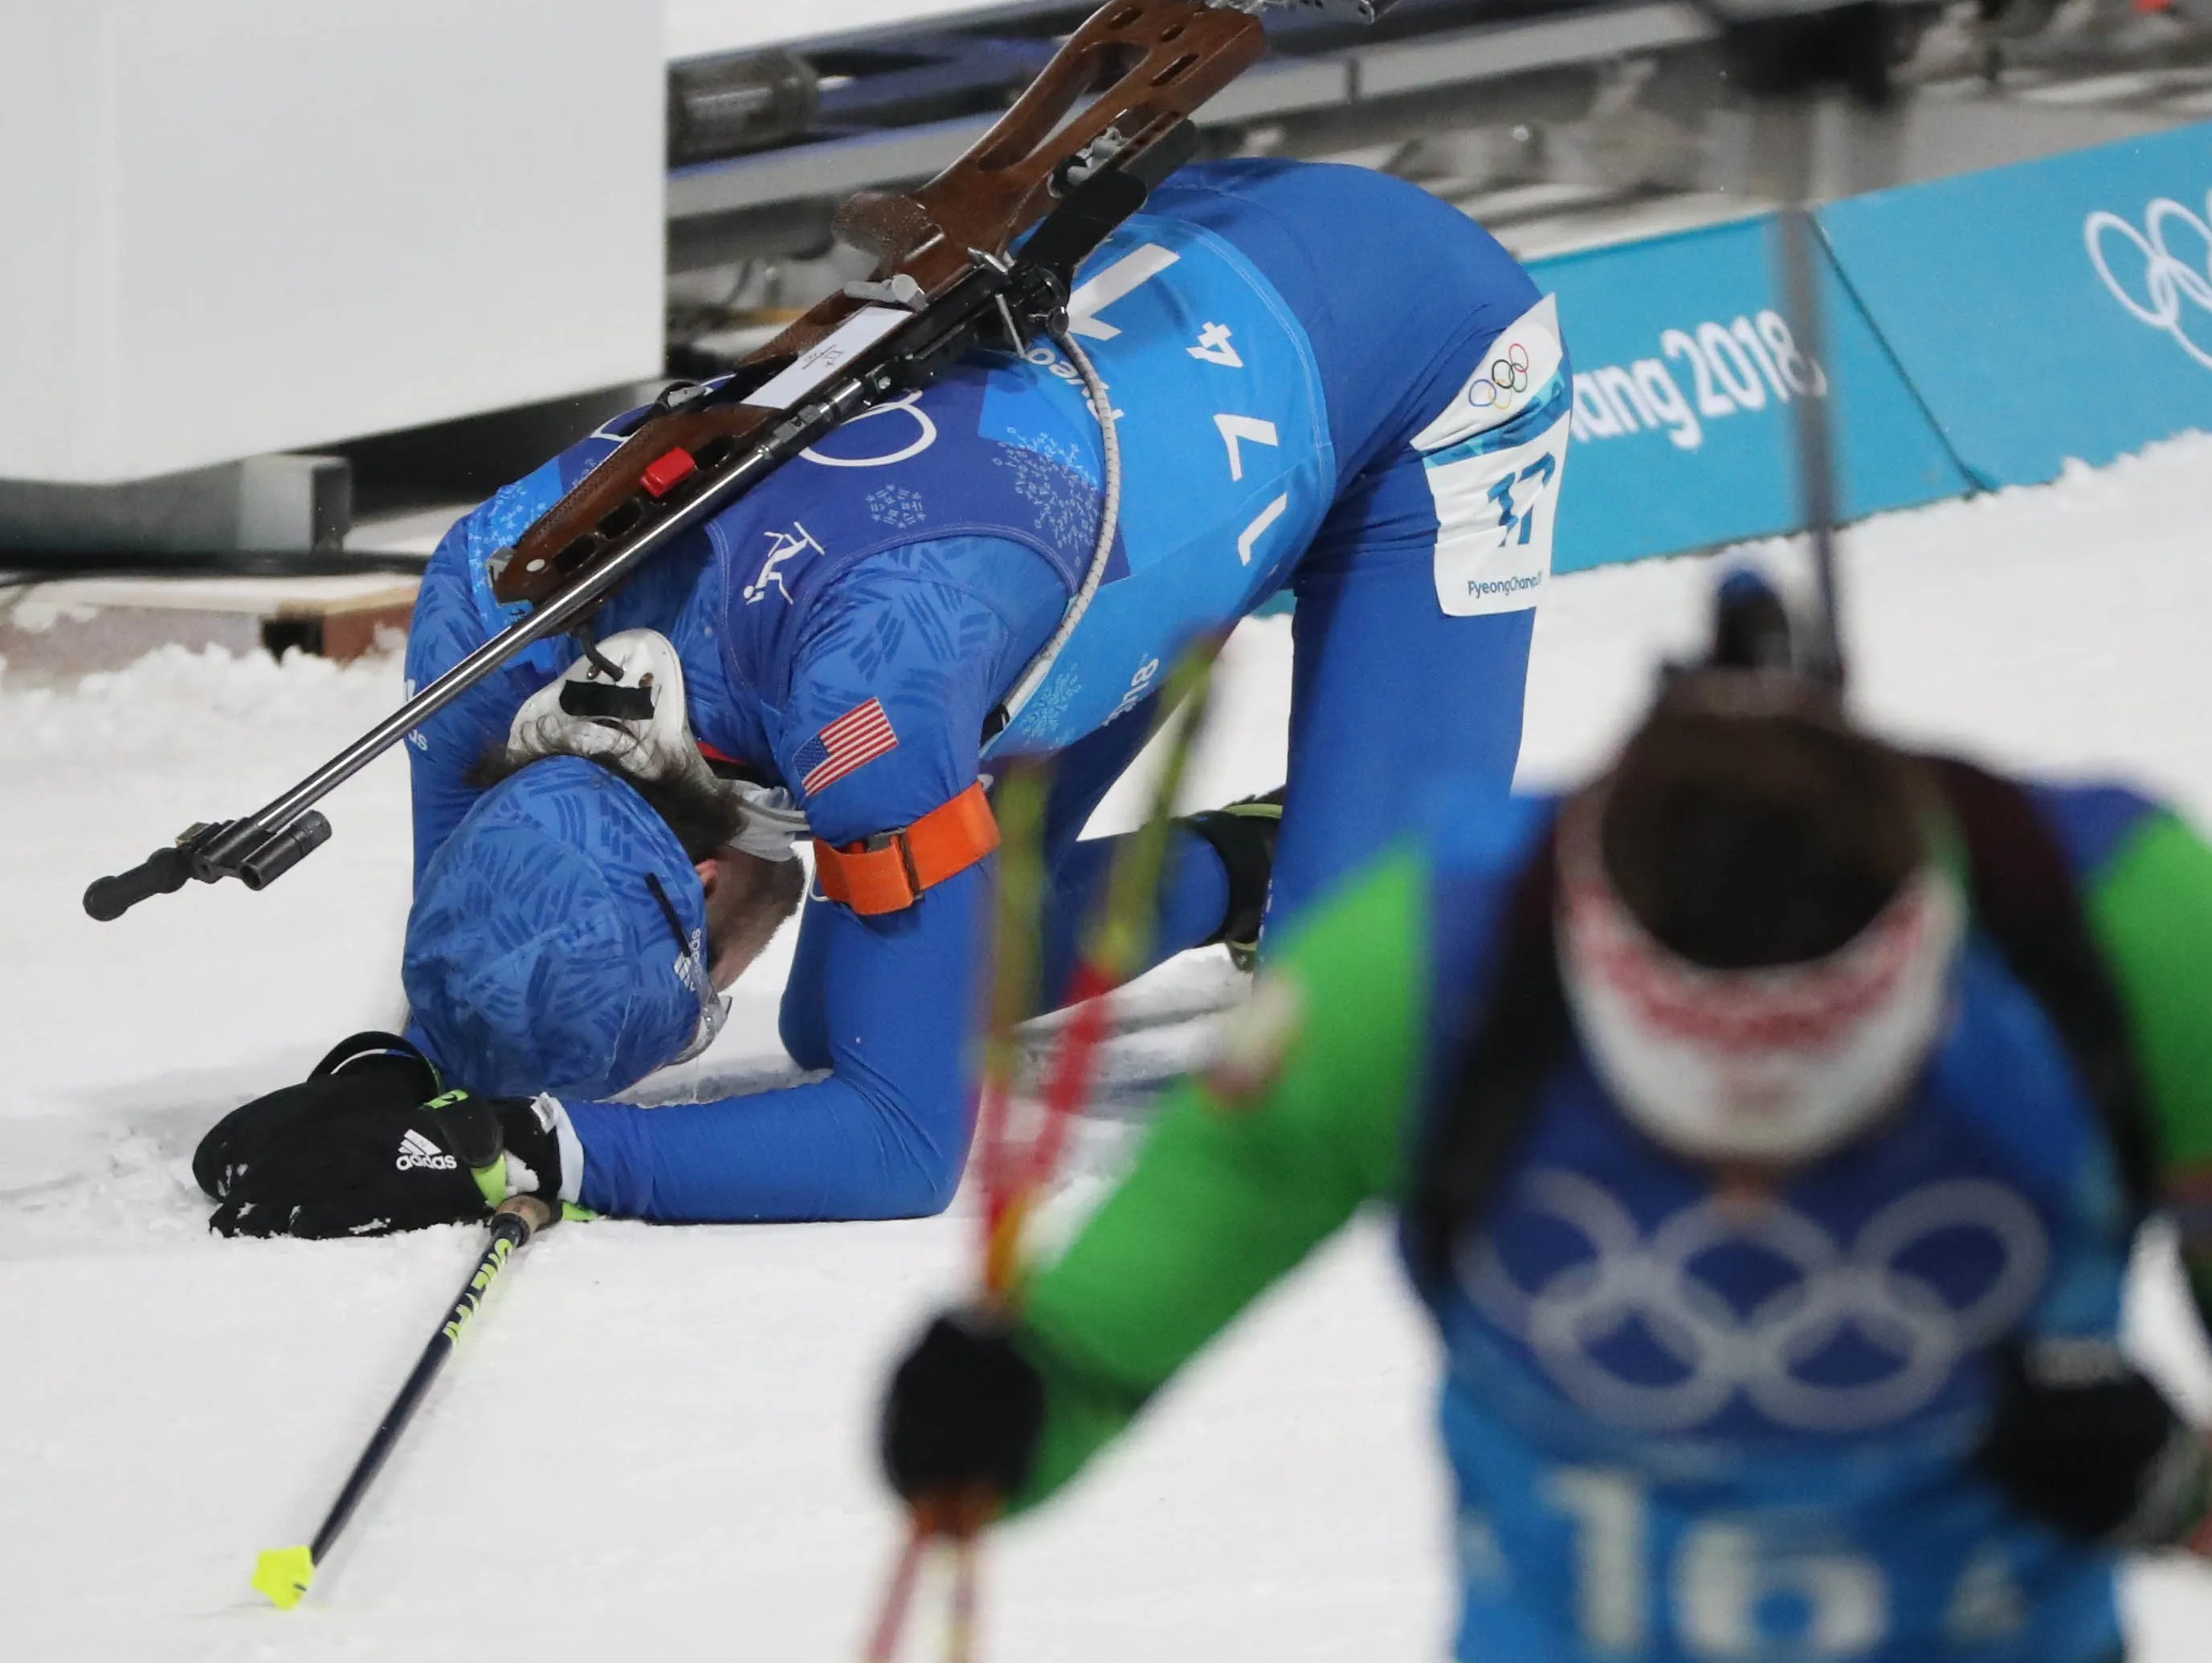 Best images from Friday at Winter Olympics